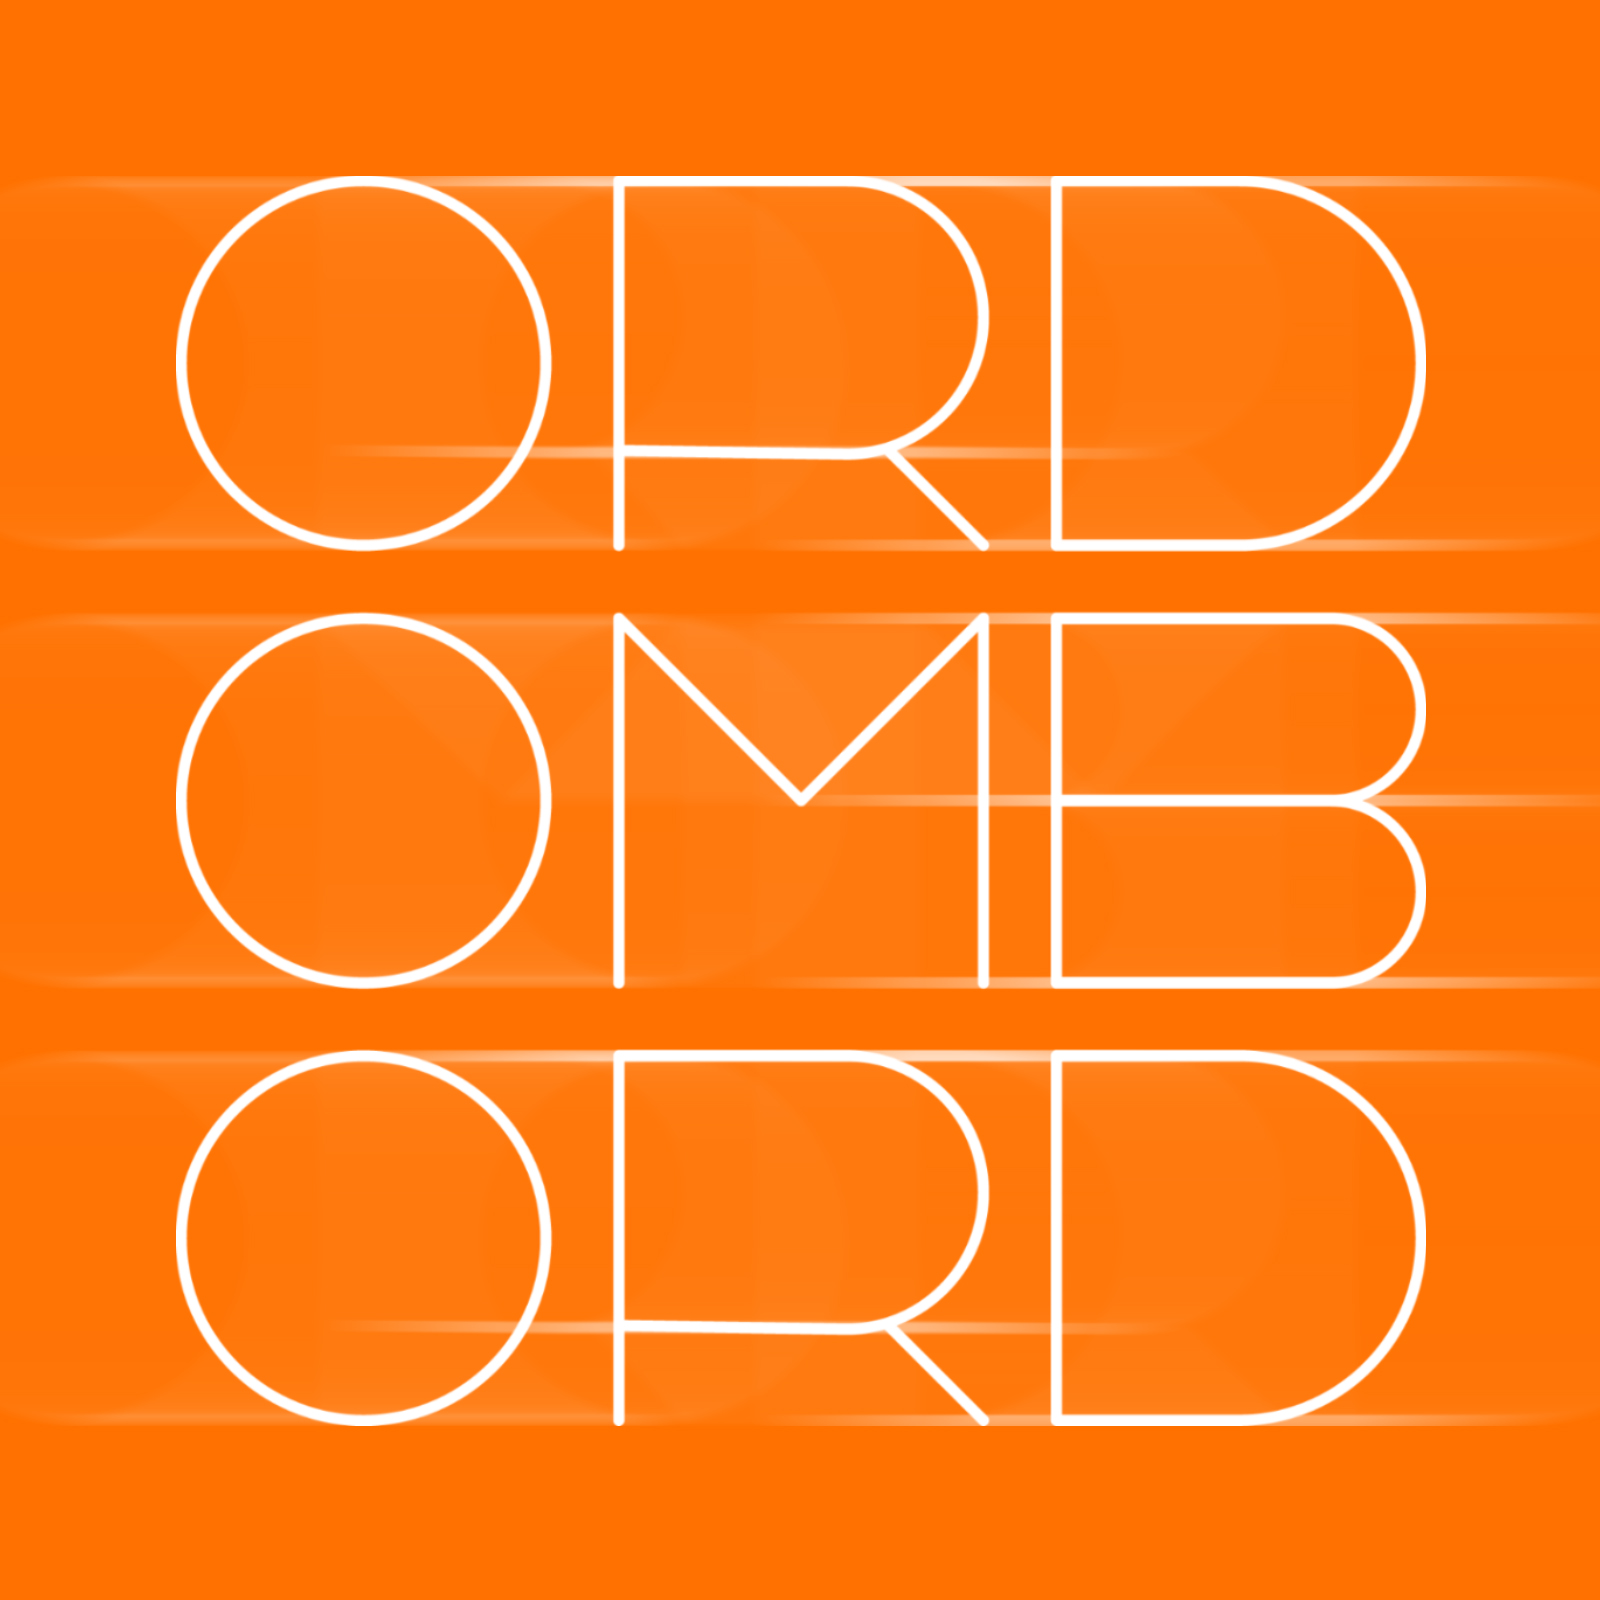 Ord ombord [Words Onboard]